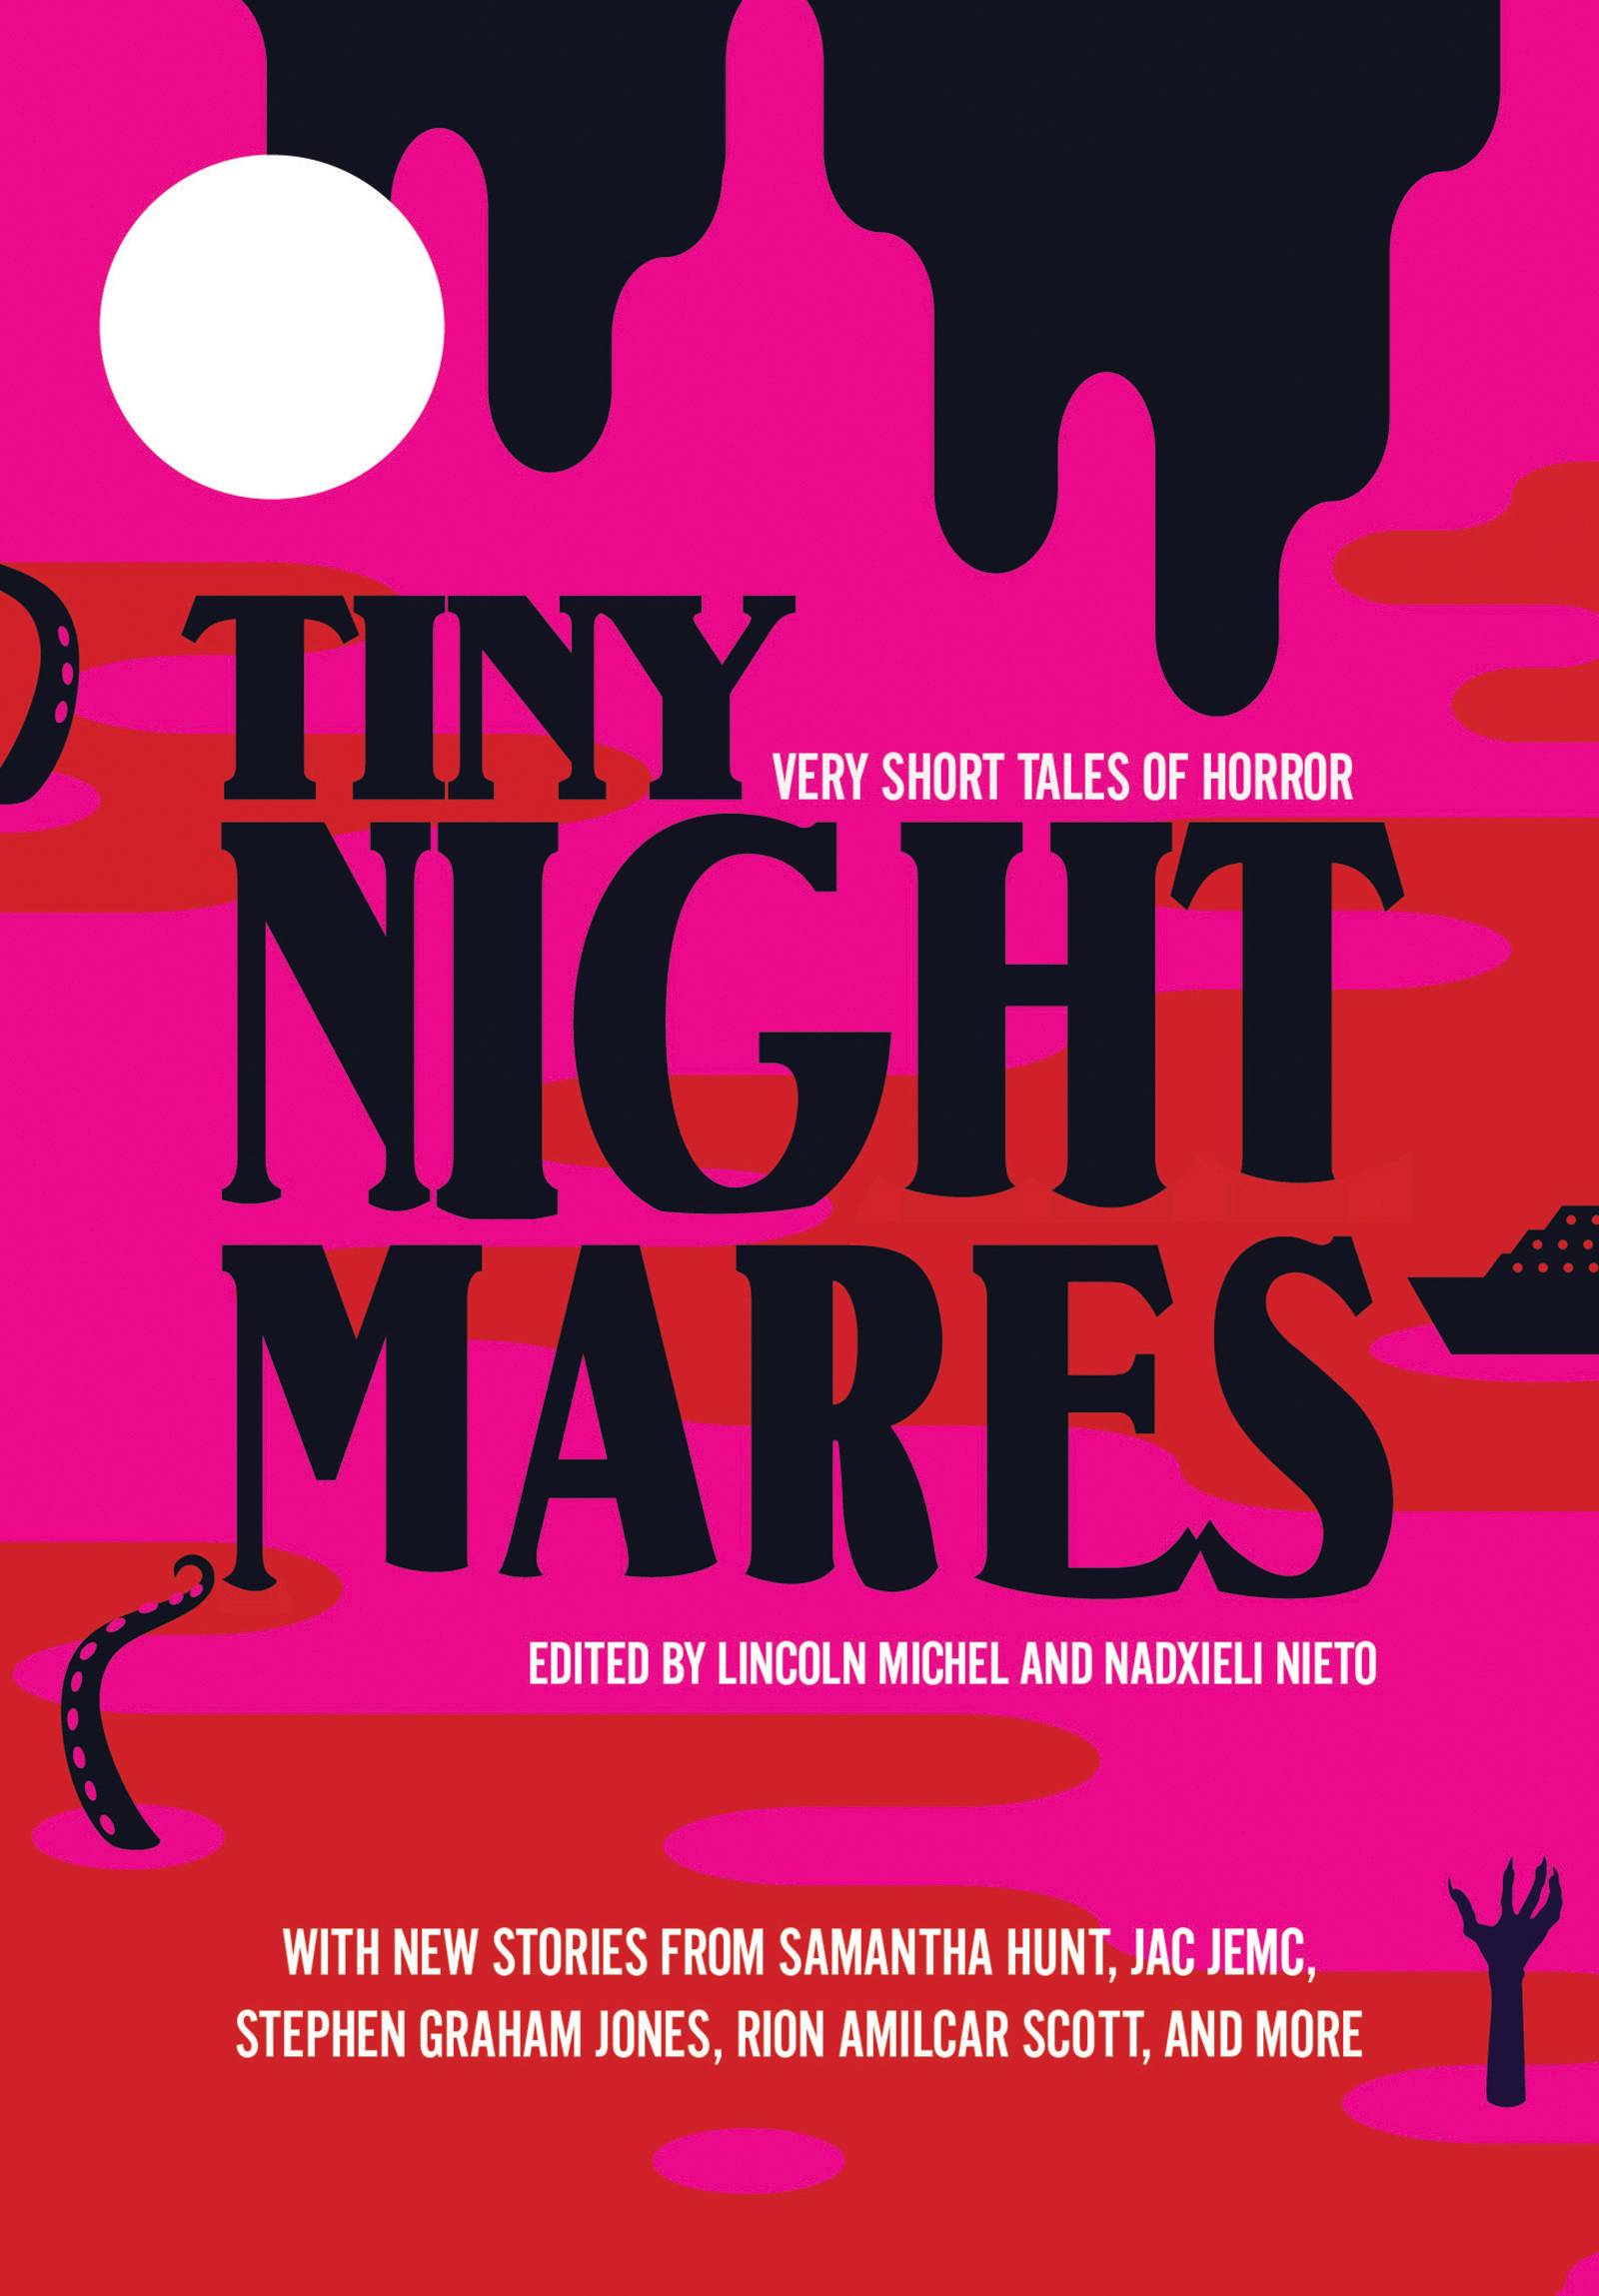 Tiny Nightmares: Very Short Stories of Horror by Lincoln Michel